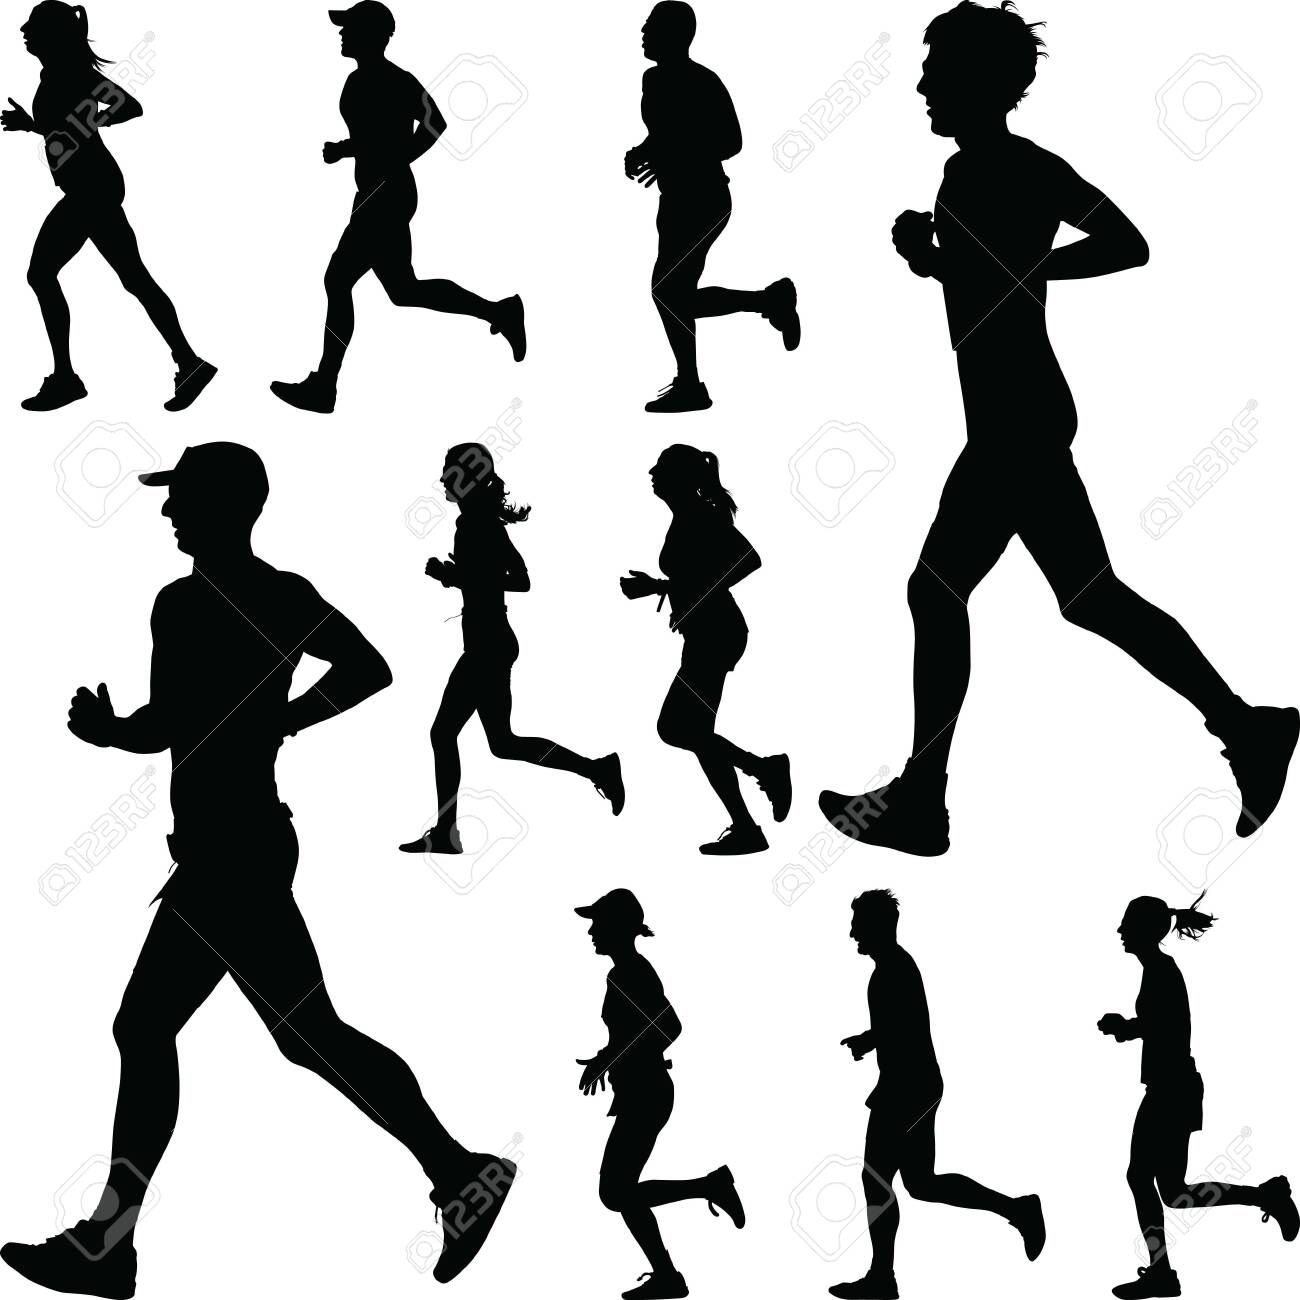 group of runners - 150942772